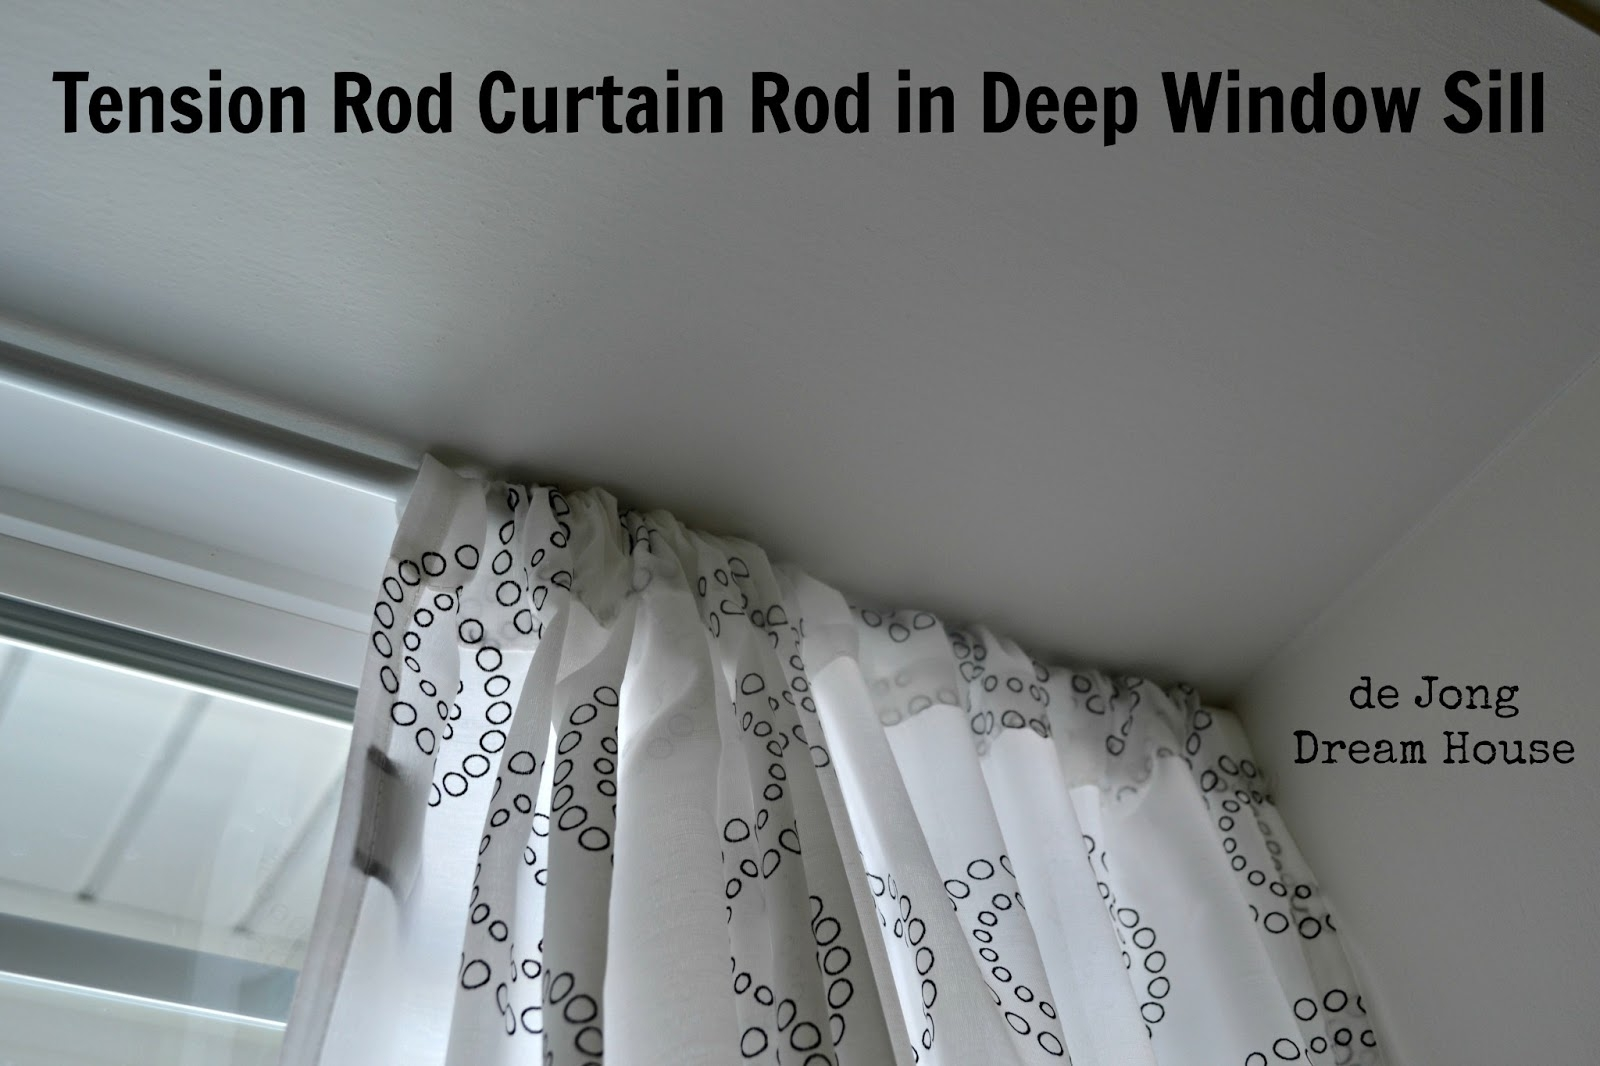 De Jong Dream House Uses For Tension Rods Within Spring Loaded Curtain Poles (View 4 of 25)